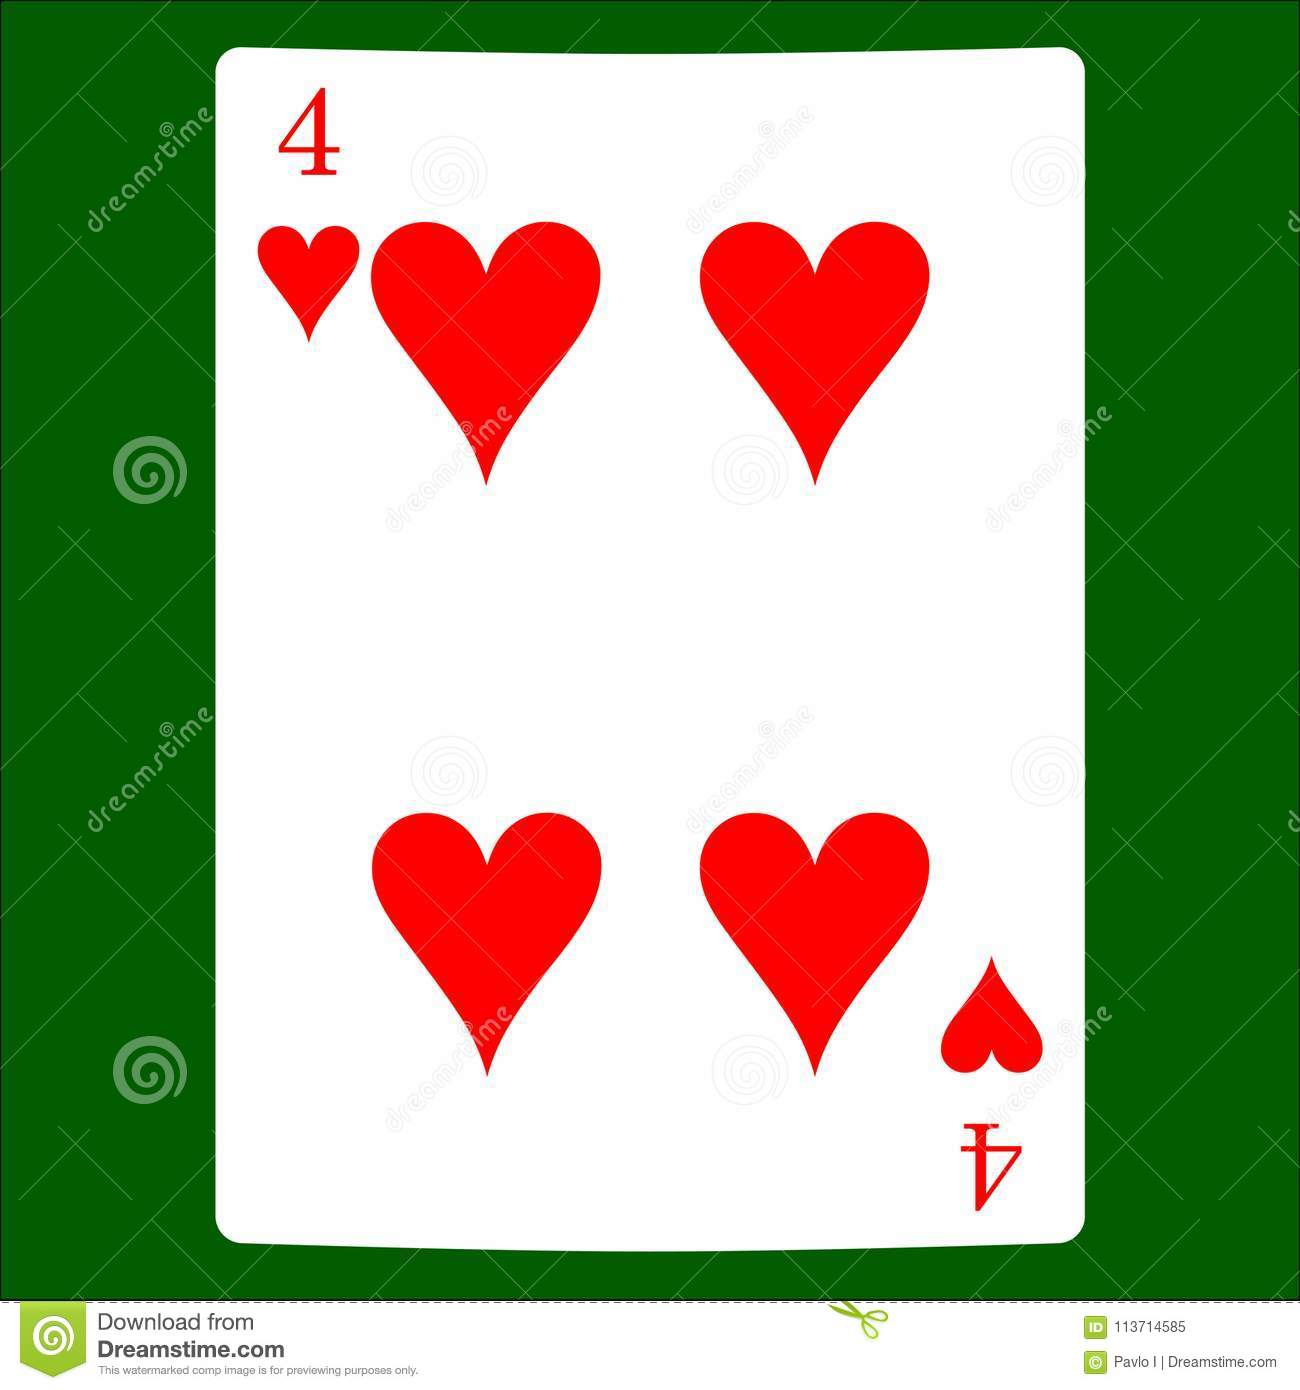 Four hearts. Card suit icon vector, playing cards symbols vector